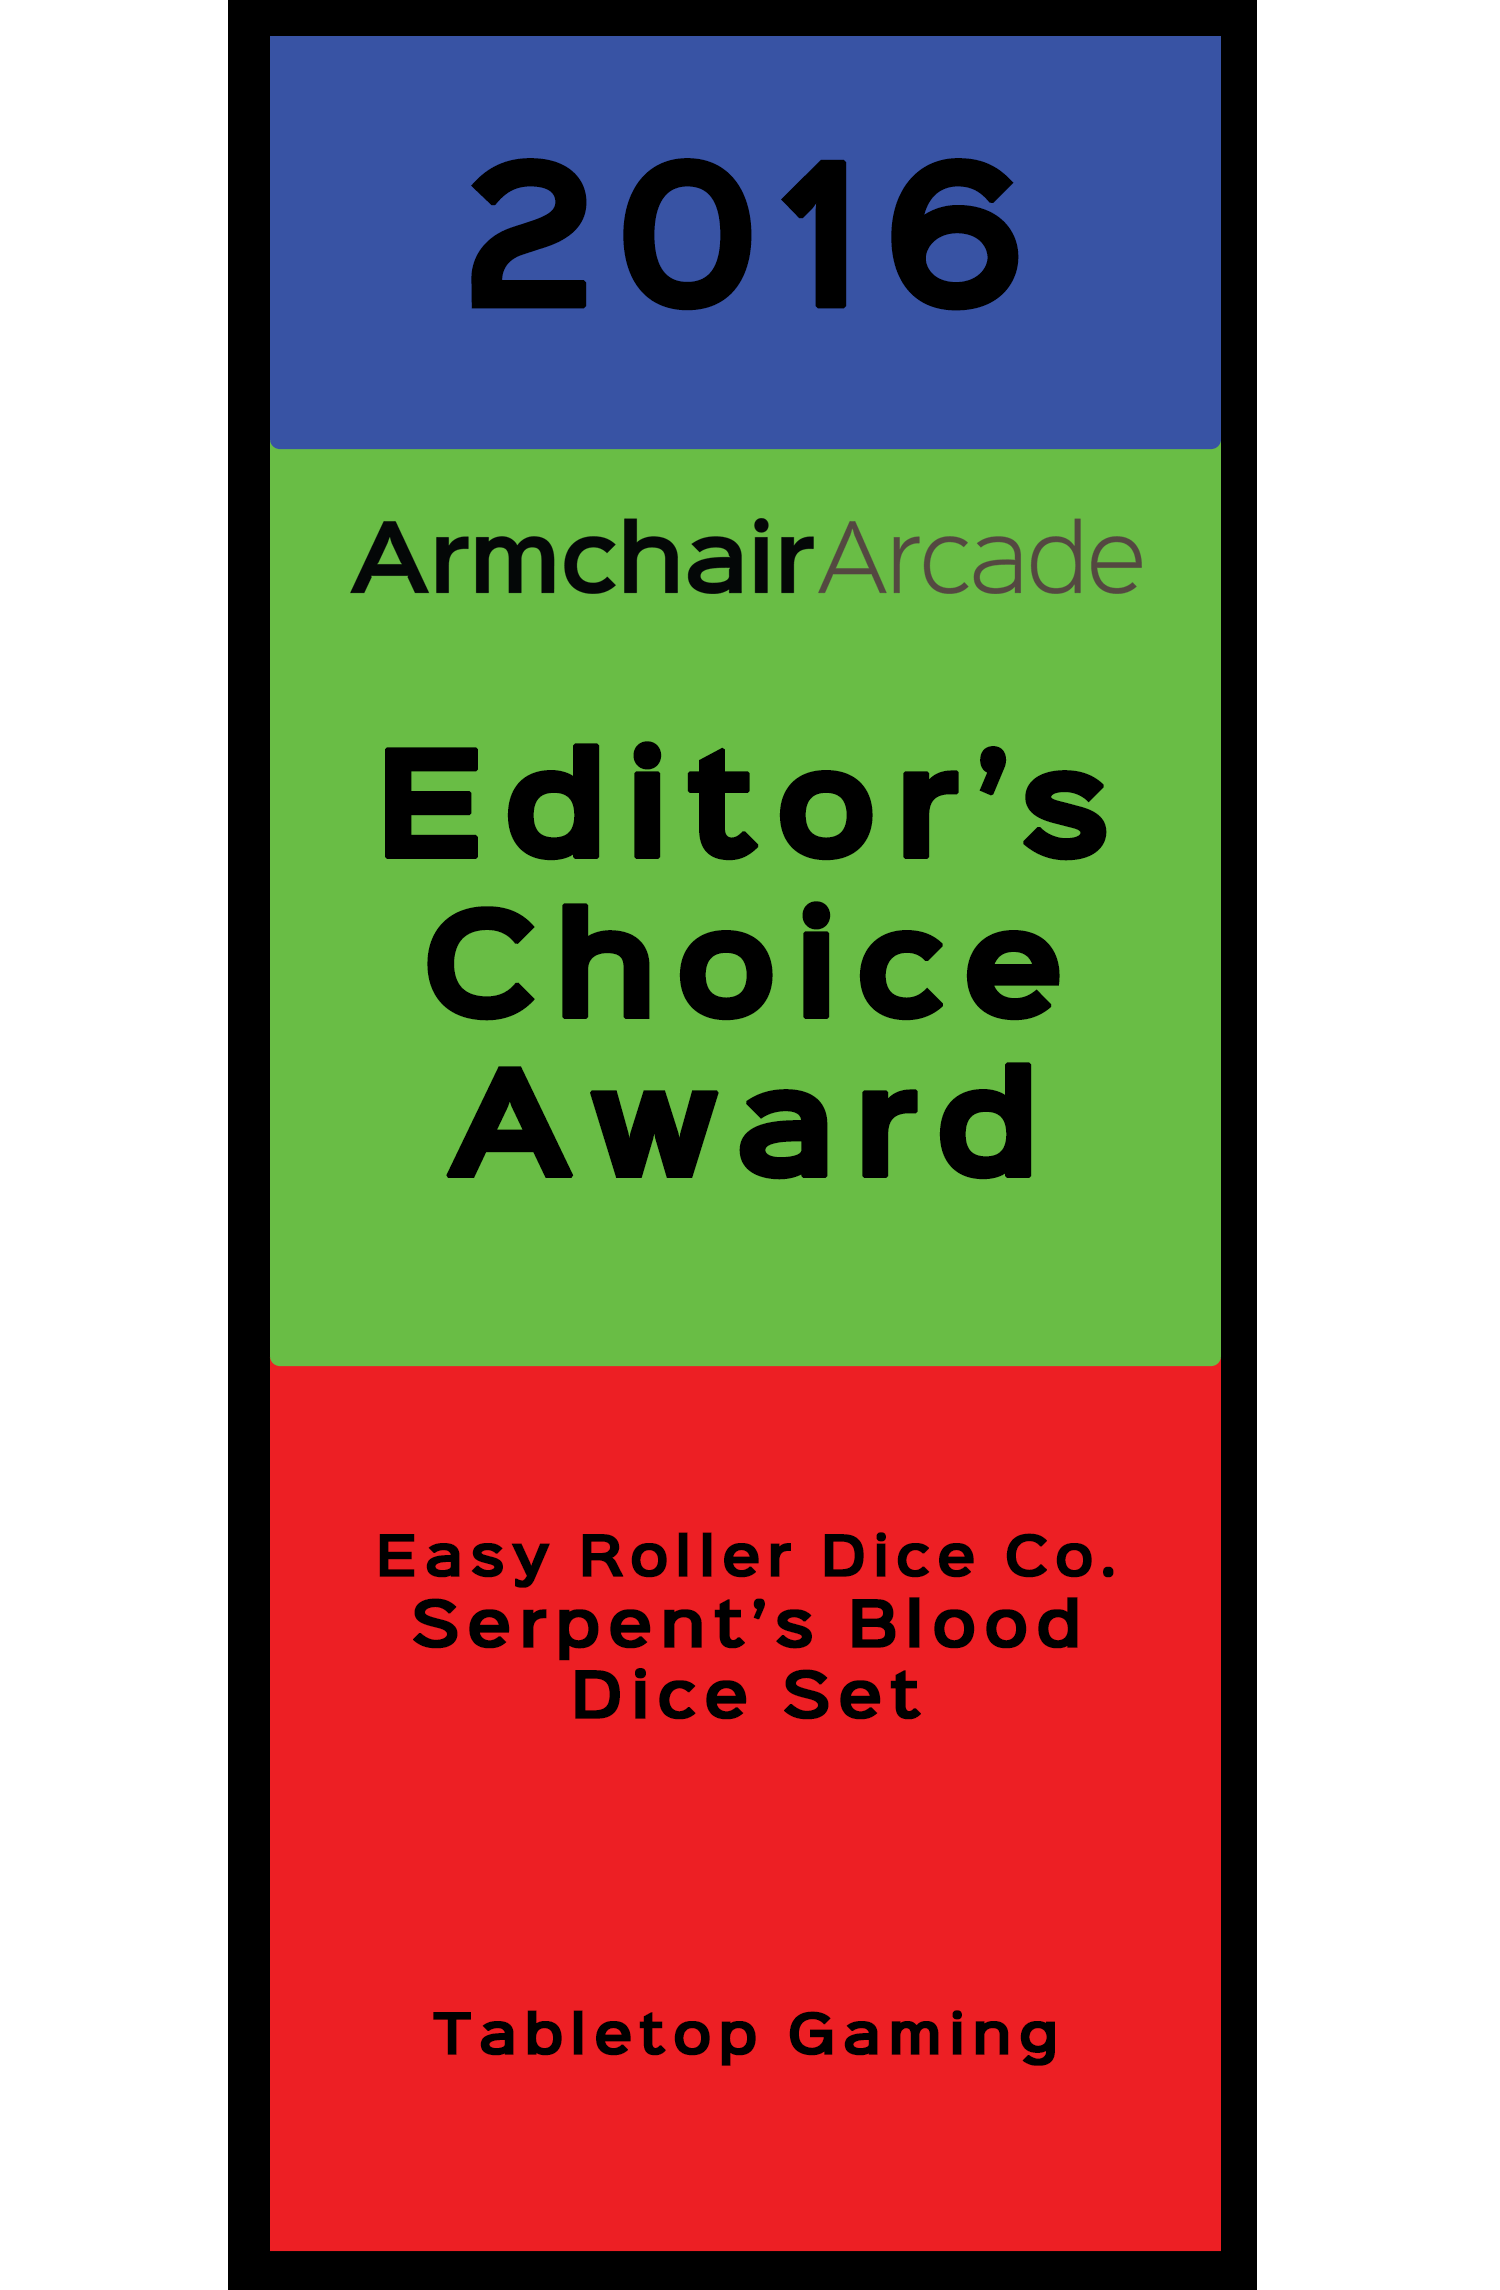 Armchair Arcade Editor's Choice Award 2016 for Easy Roller Dice Co. Serpent's Blood Dice Set, Tabletop Gaming Category